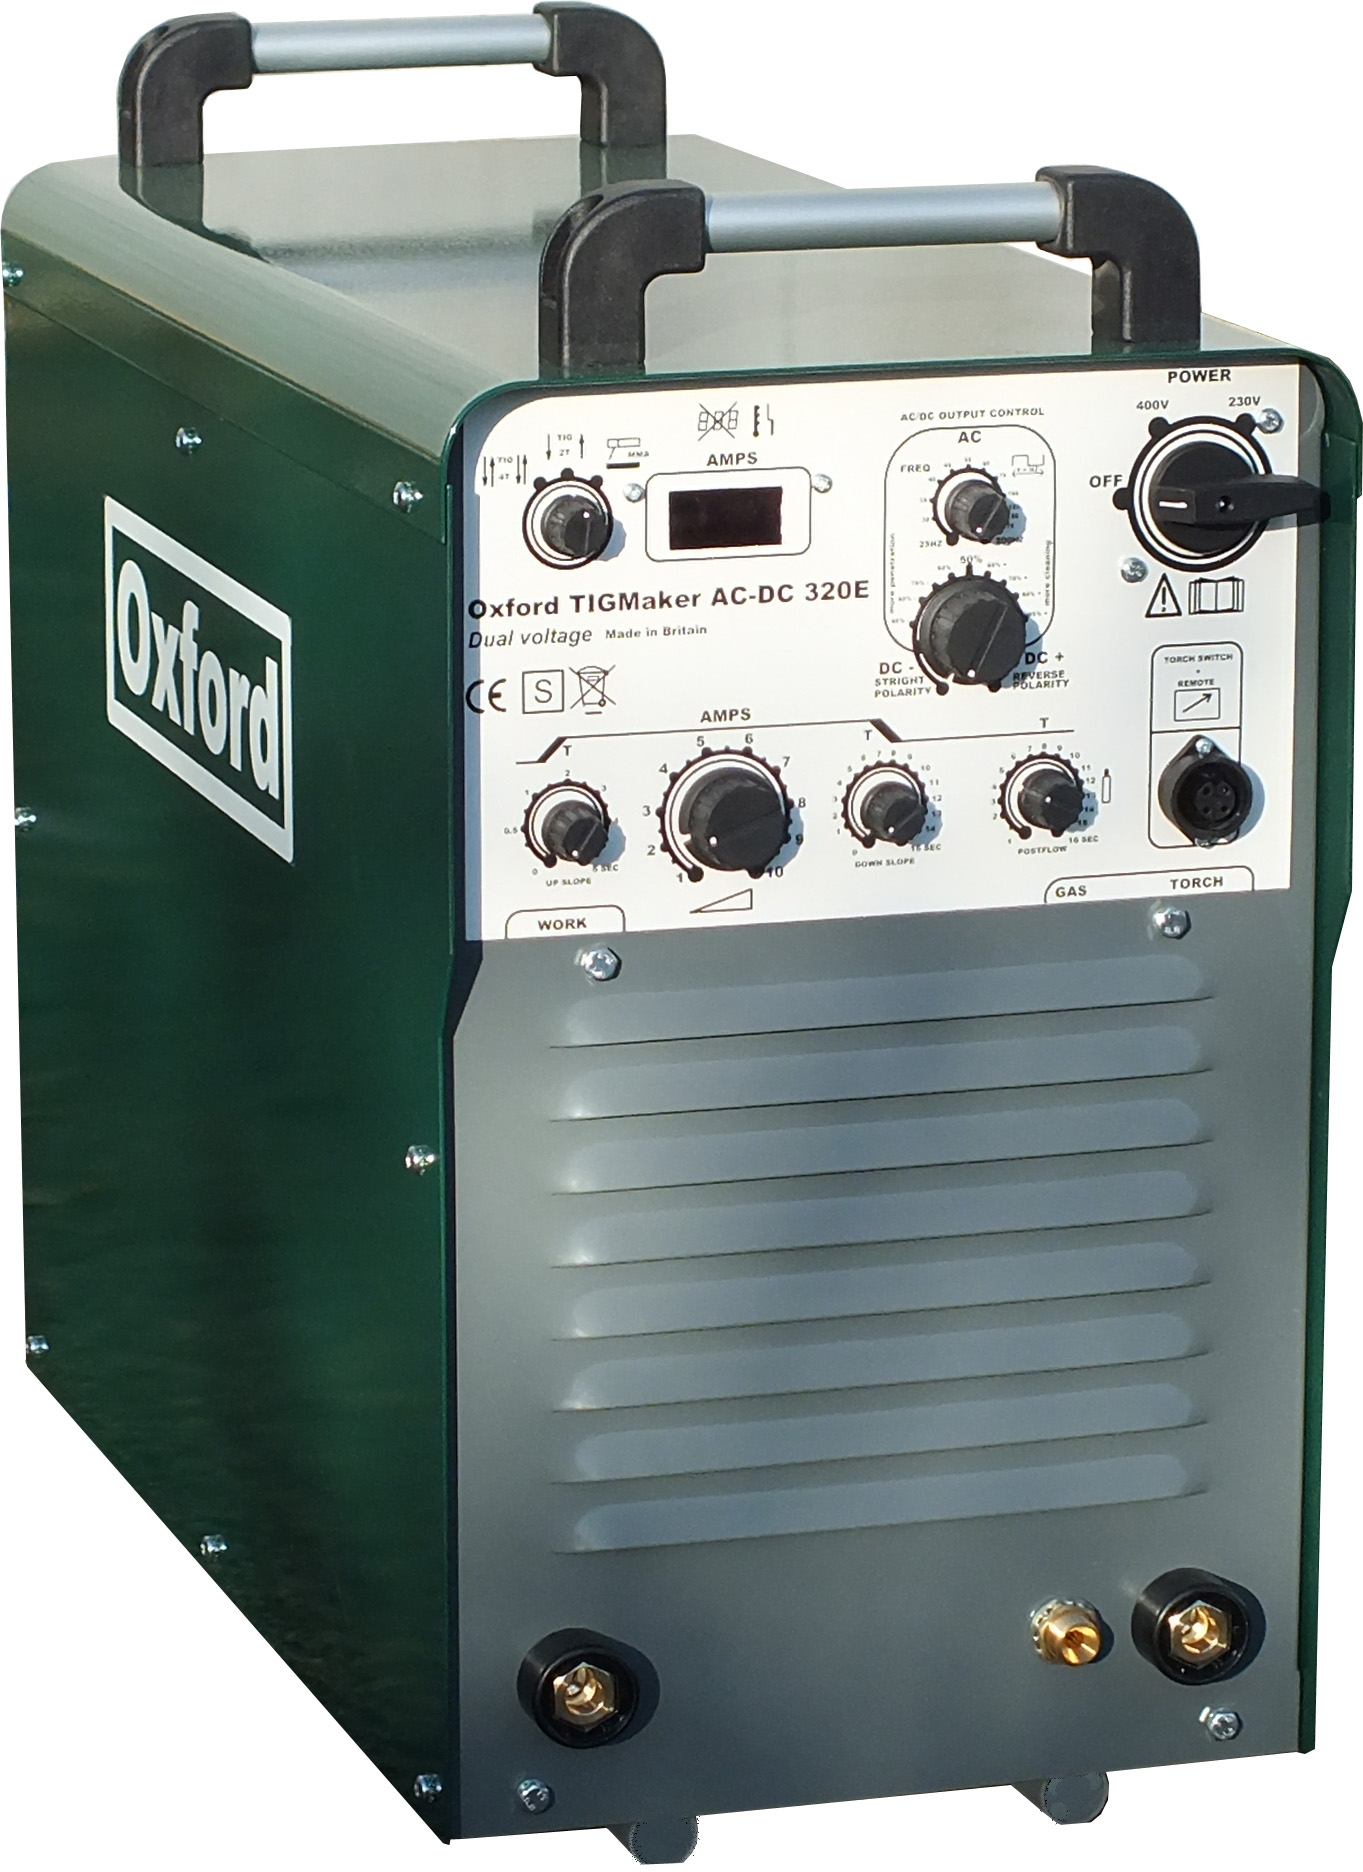 Oxford  TIGMaker 270E dual voltage 230V/400V